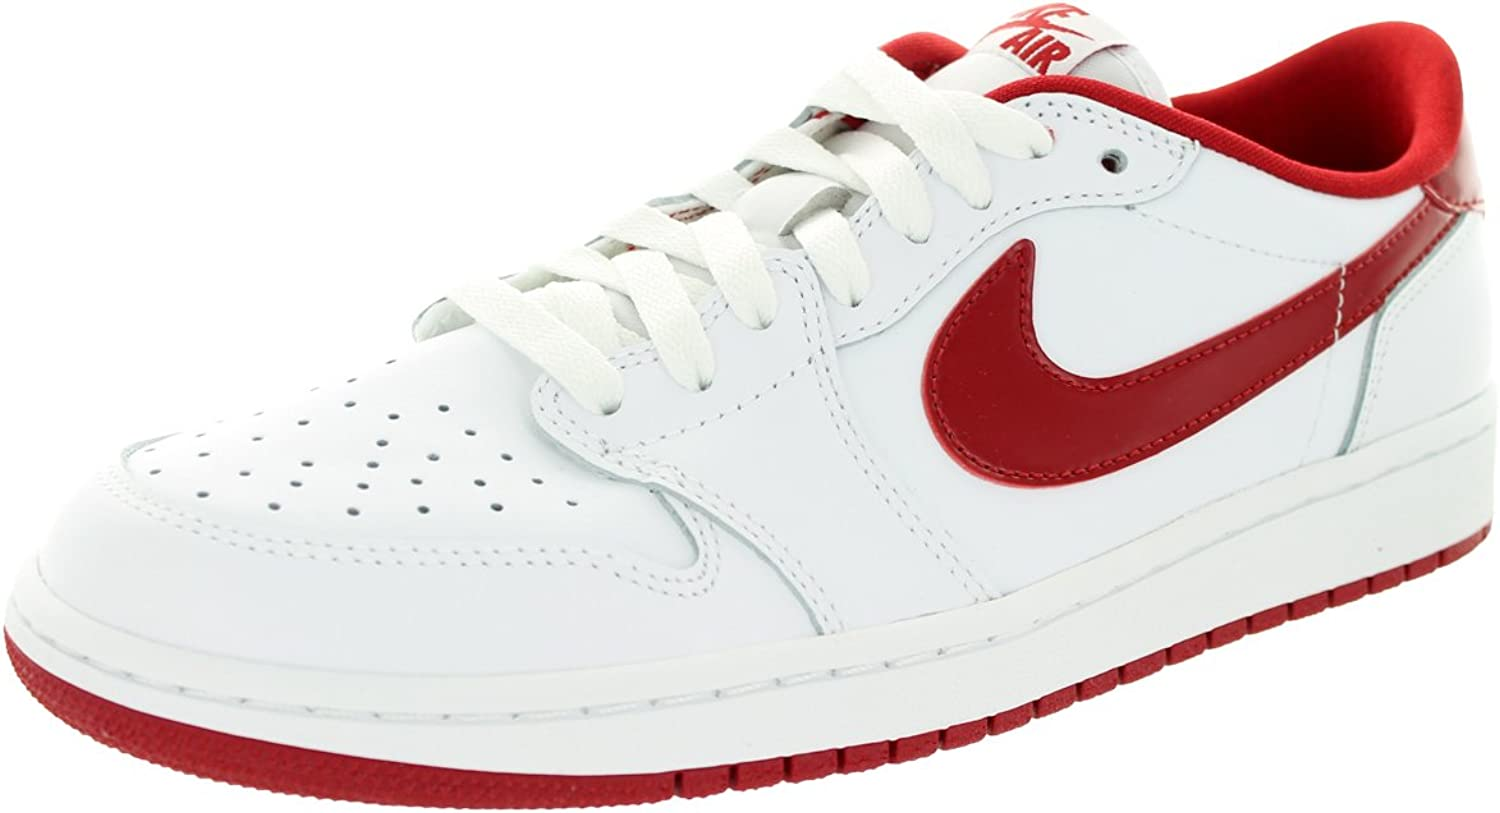 Jordan Air 1 Retro Low OG